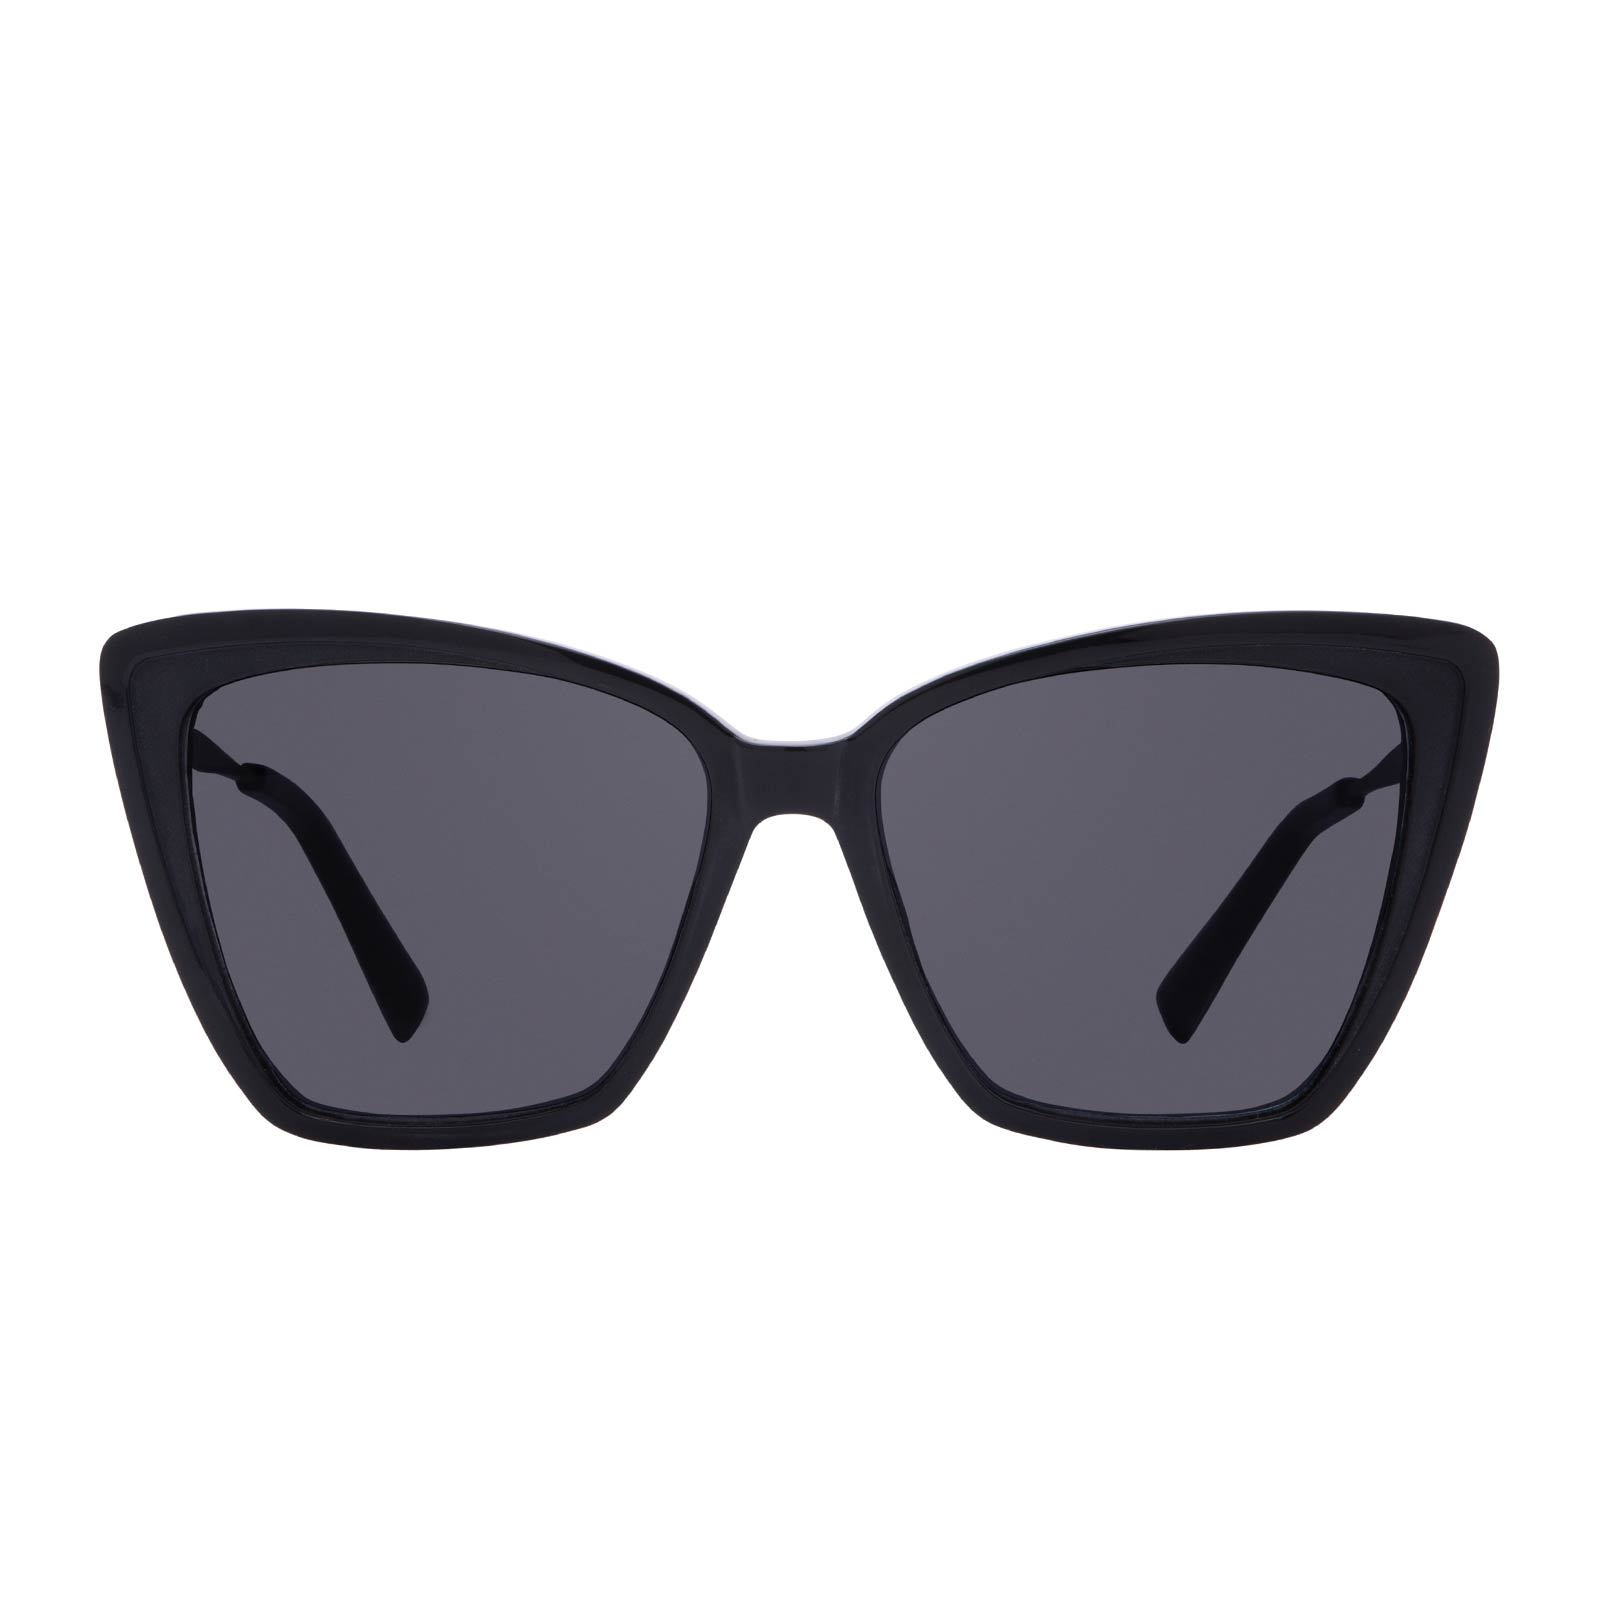 BECKY II - BLACK + DARK SMOKE POLARIZED